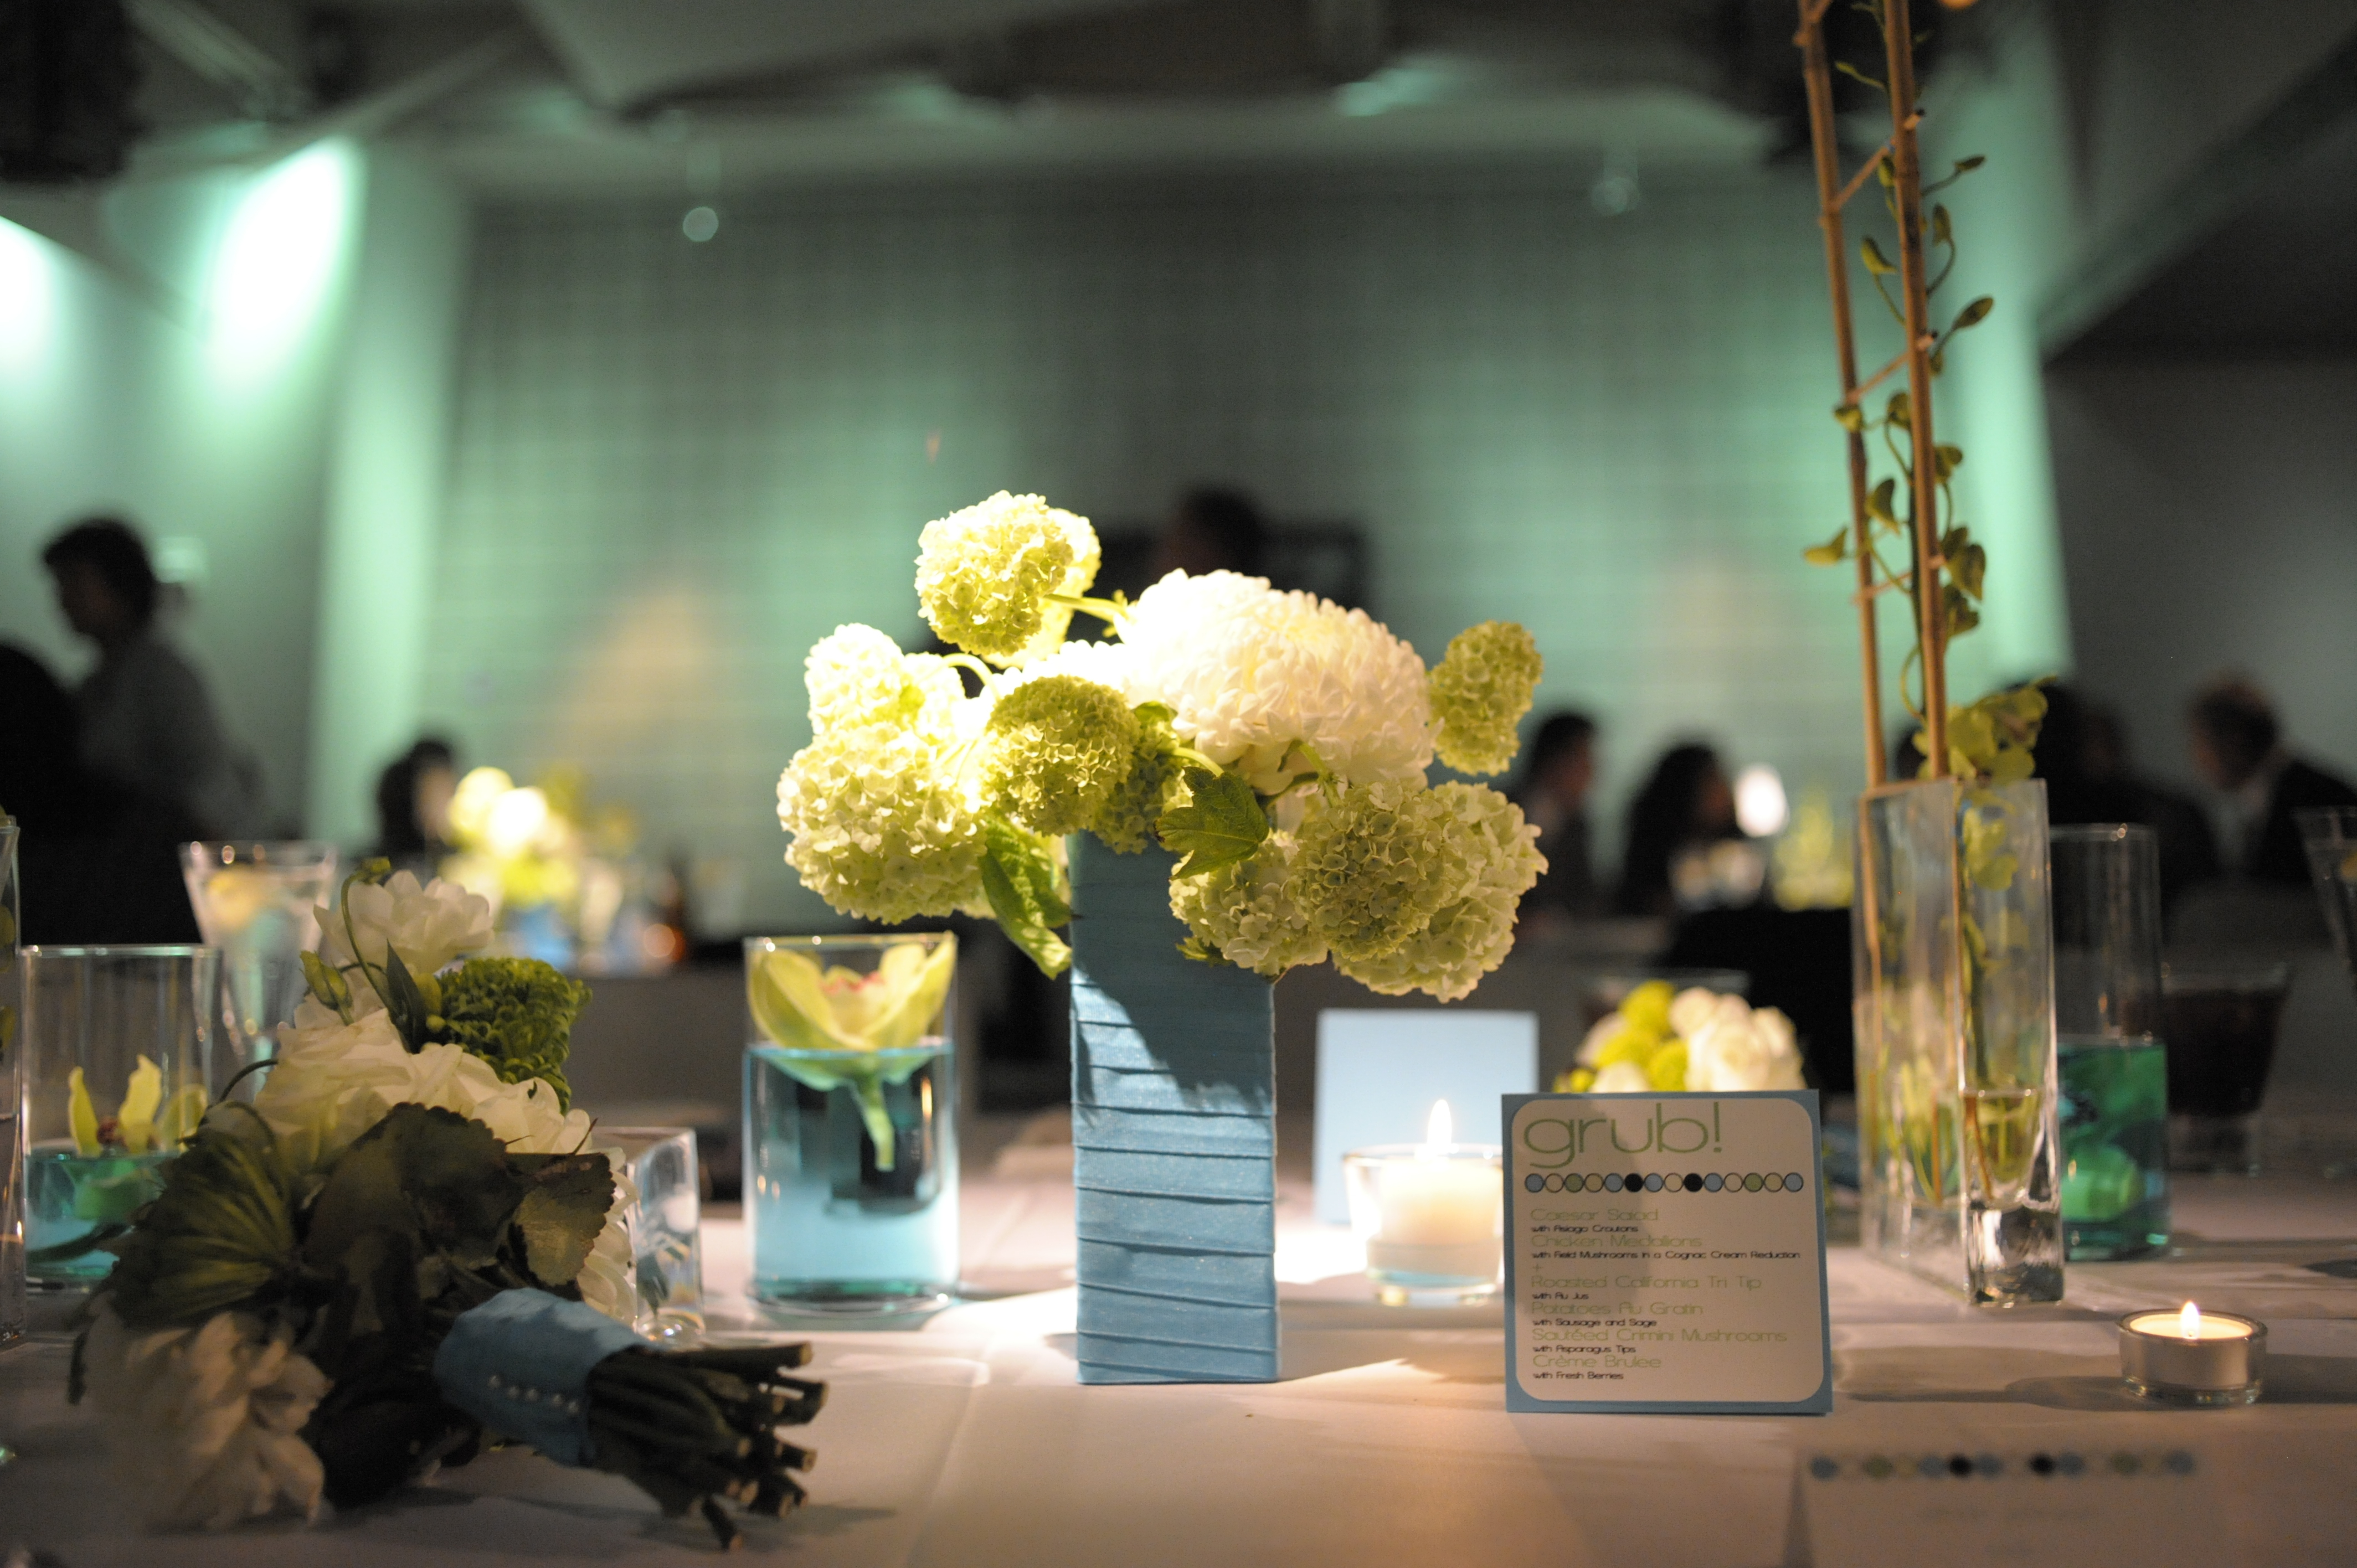 blue, green, Centerpieces, Modern, Lighting, Candles, Turquoise